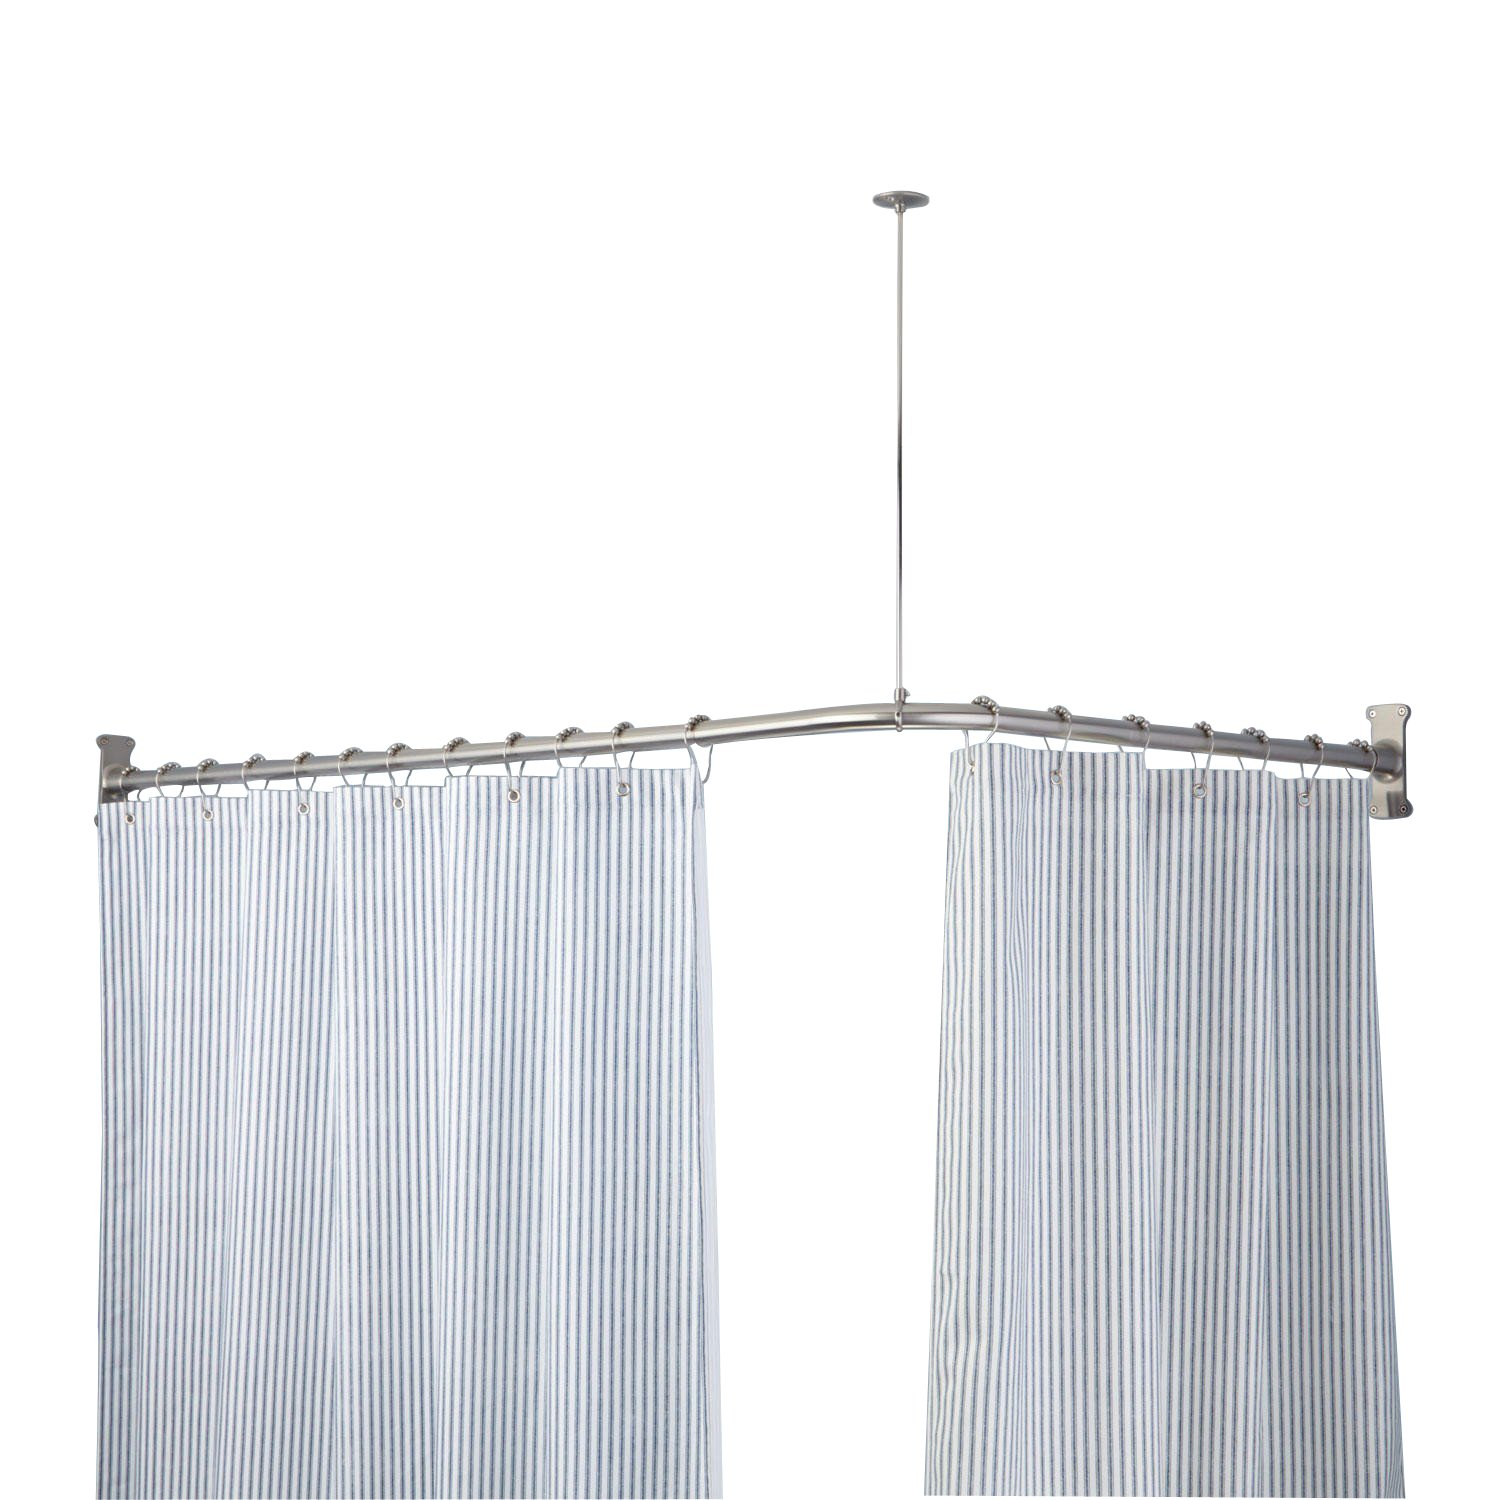 Naiture 36'' L x 36'' W Never Rust Brass Corner and L-Shaped Shower Curtain Rod in Brushed Nickel Finish by Naiture (Image #3)